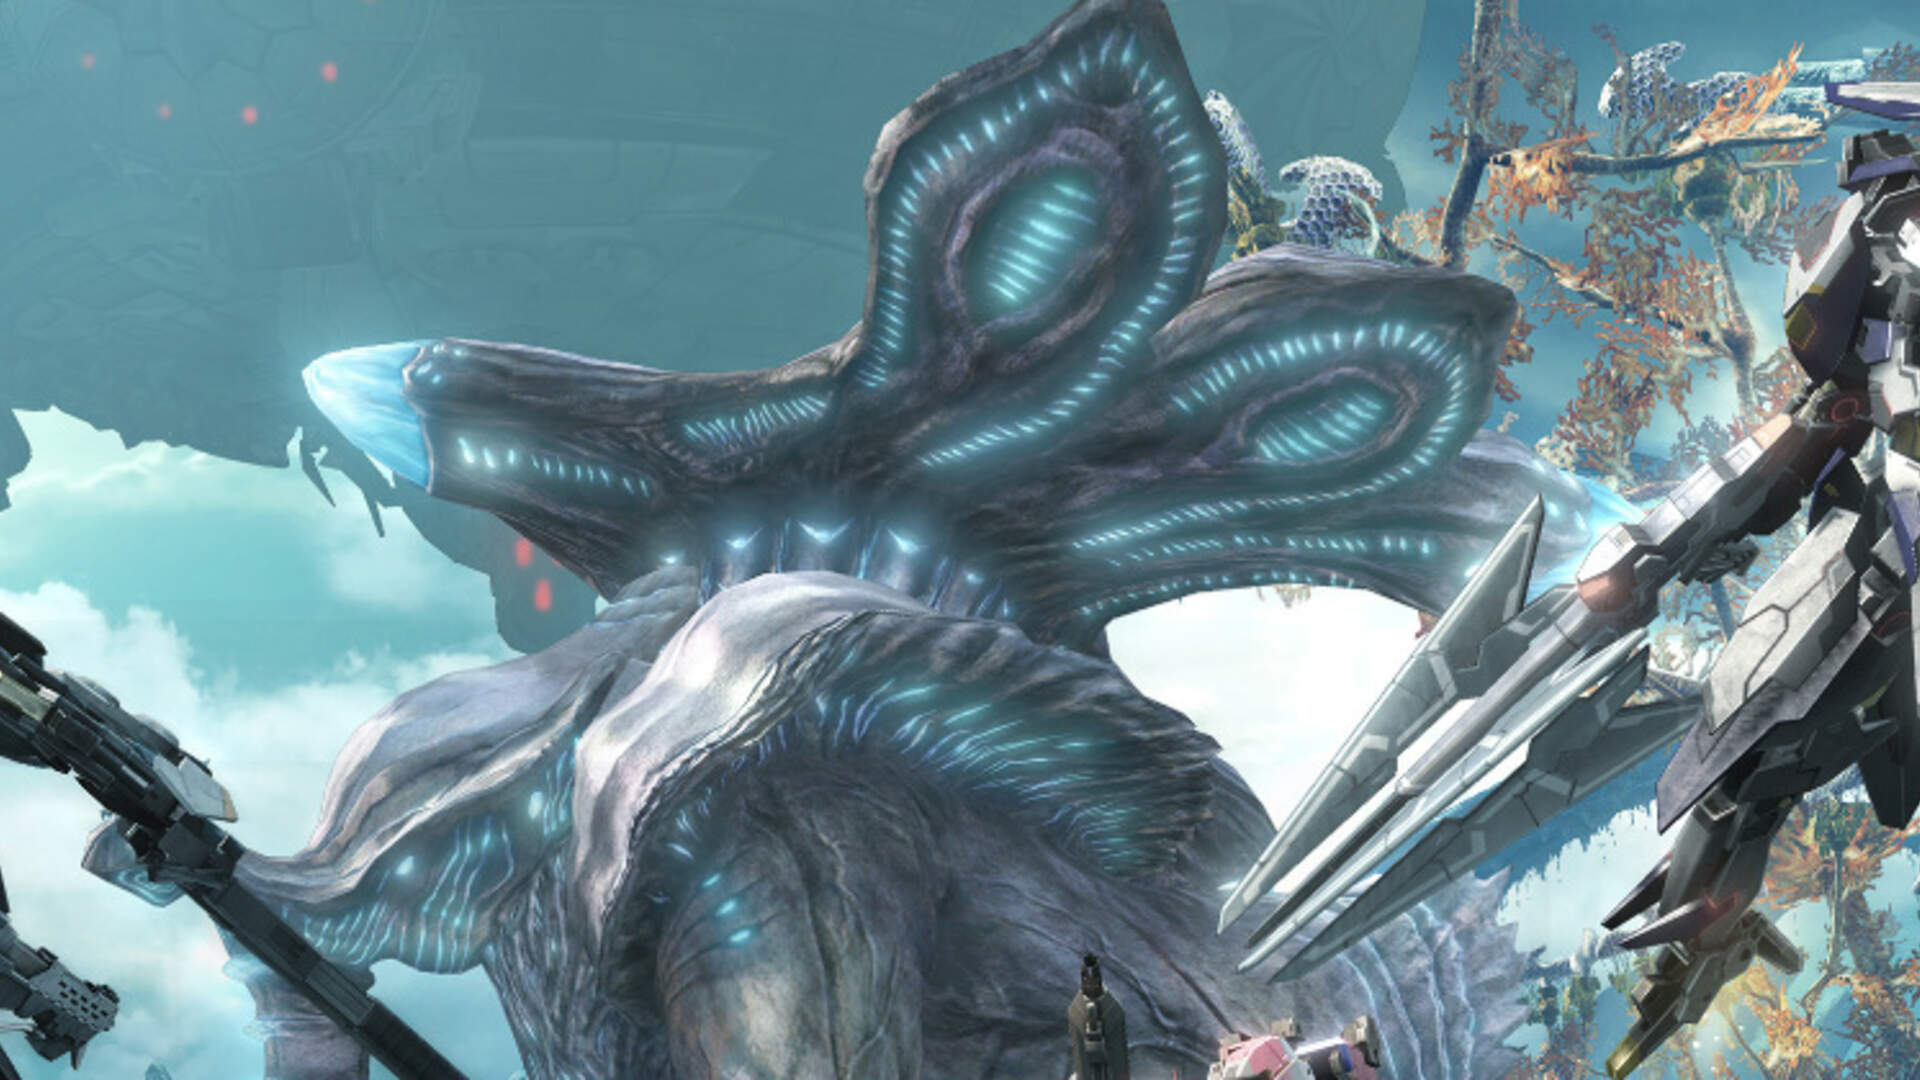 Xenoblade Chronicles X Director Leans Towards Western Culture